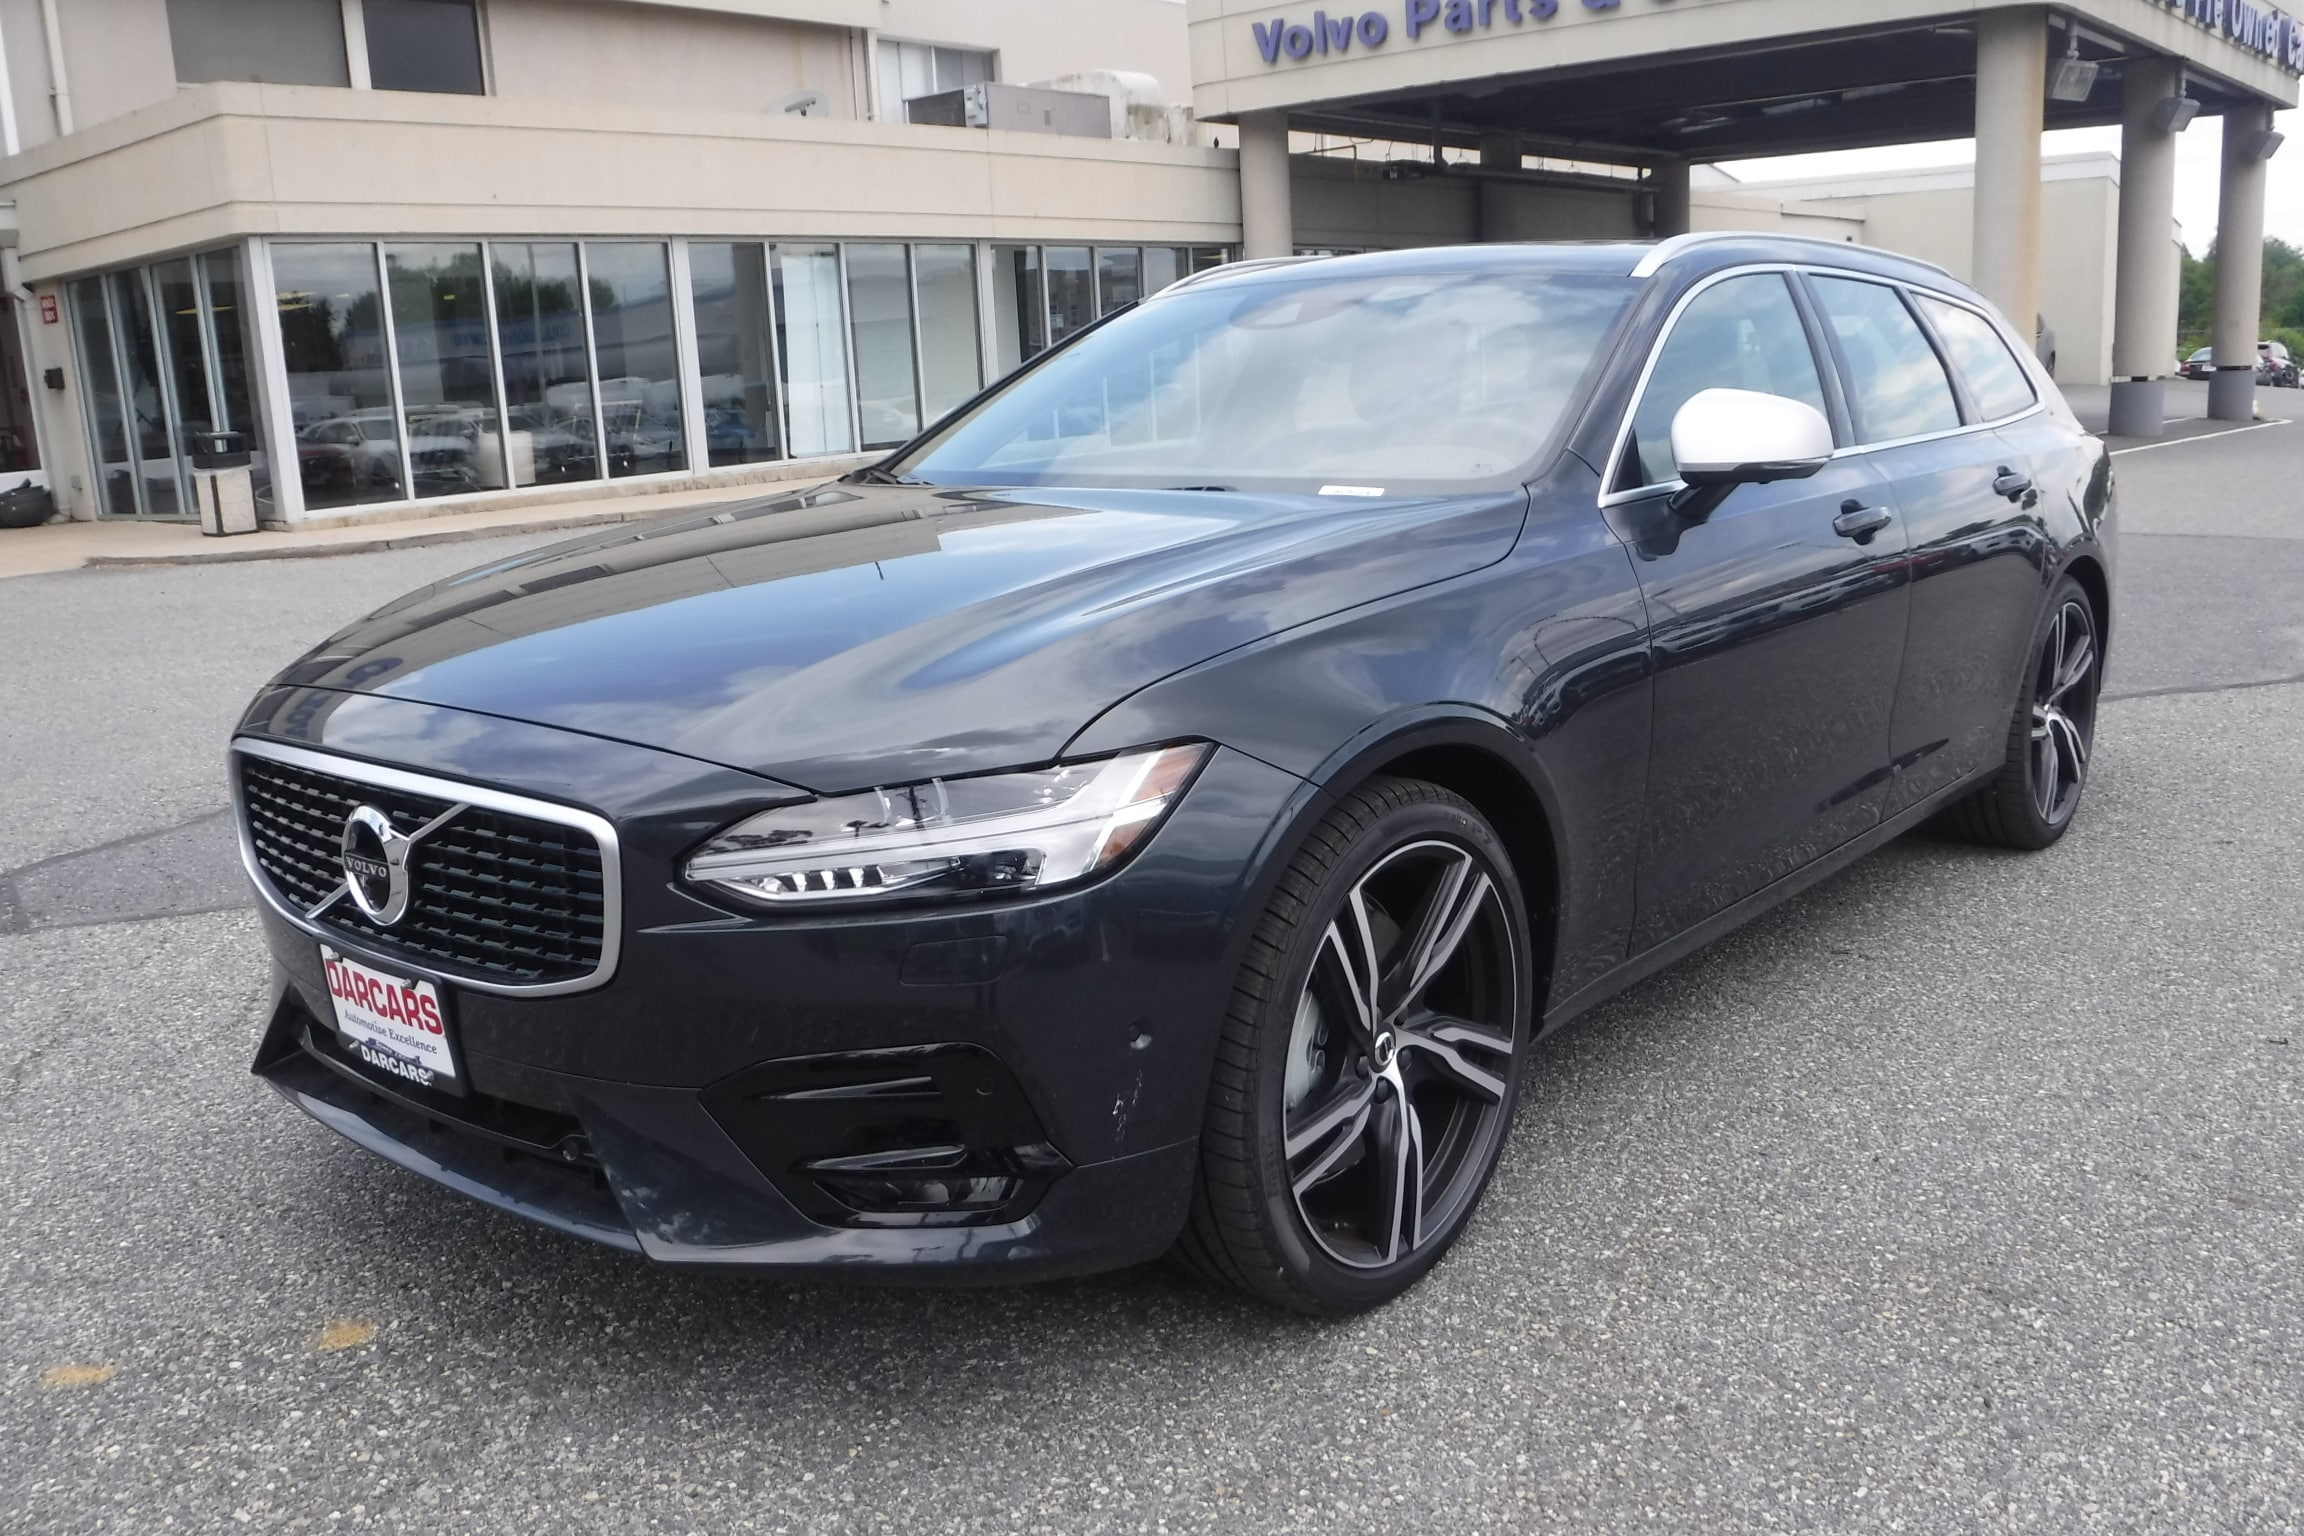 New Volvo Specials in Rockville, MD: DARCARS Volvo Cars